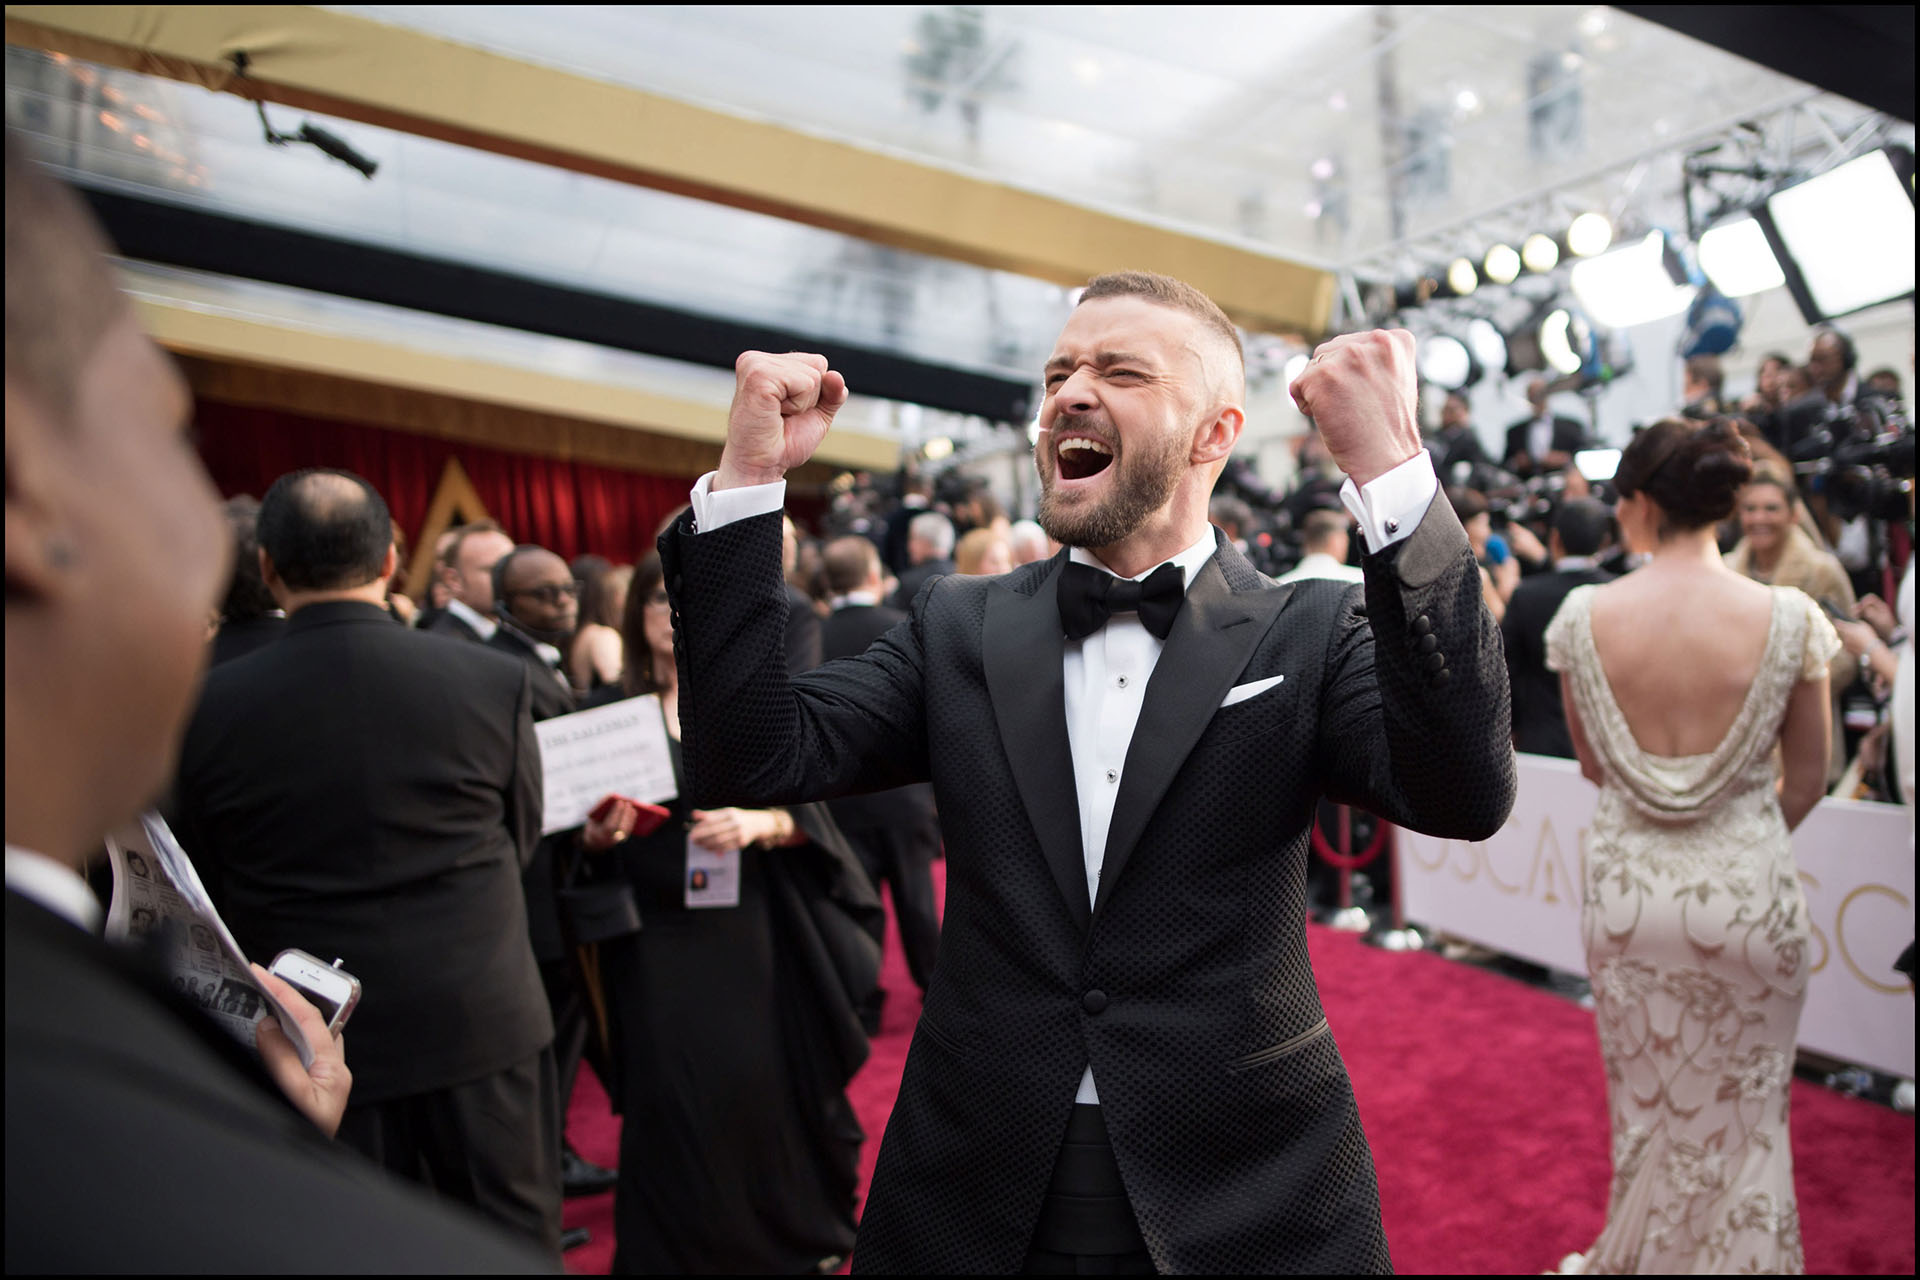 Oscar®-nominee Justin Timberlake arrives at The 89th Oscars® at the Dolby® Theatre in Hollywood, CA on Sunday, February 26, 2017.